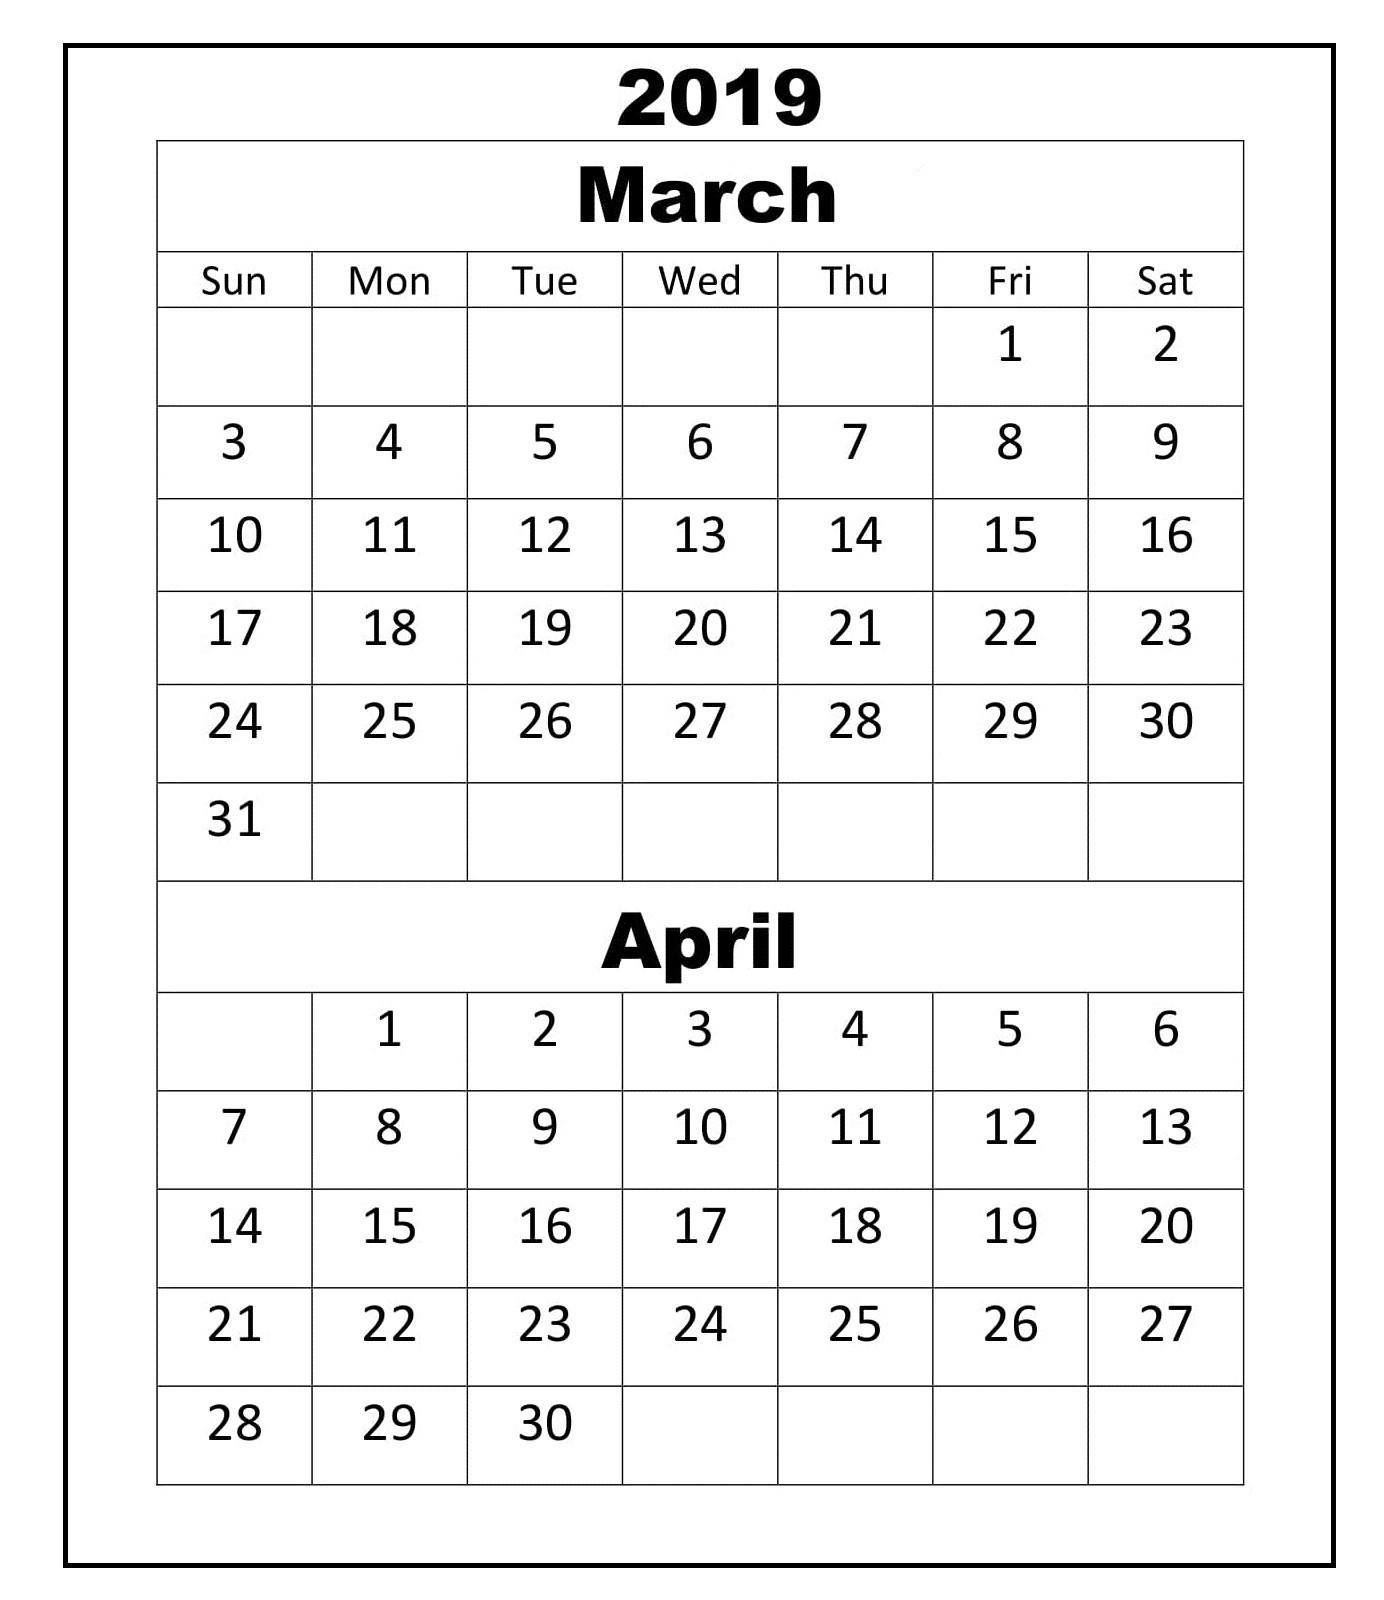 March Calendar 2019 Actual March April 2019 Calendar Printable Printables Calendars 2019 and Of March Calendar 2019 Más Populares February March Calendar 2019 2018 Printable Calendar Store